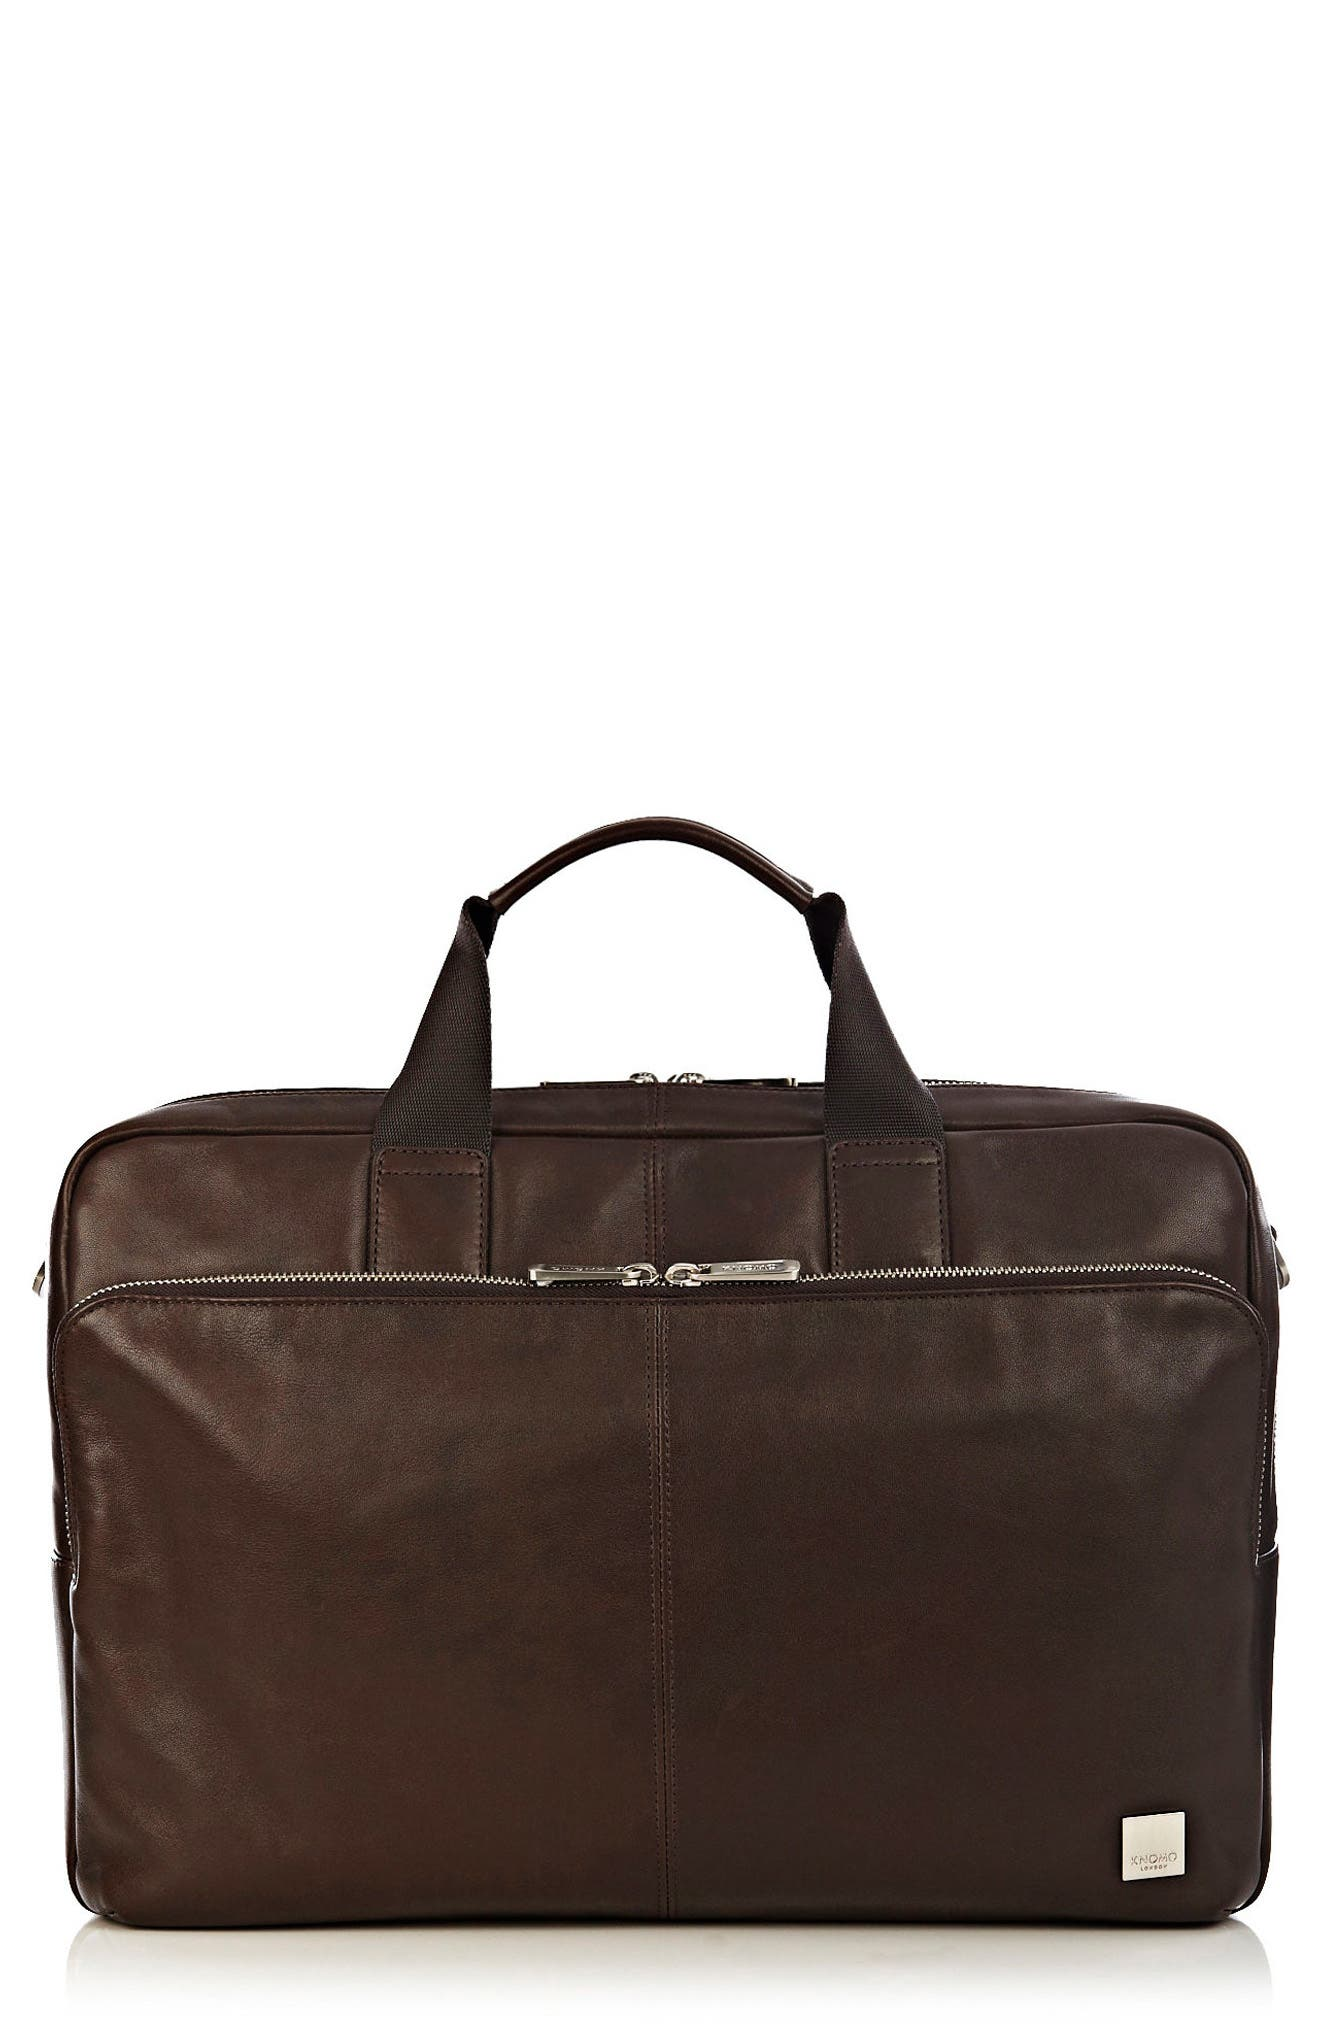 Brompton Amesbury Leather Briefcase,                             Main thumbnail 1, color,                             BROWN